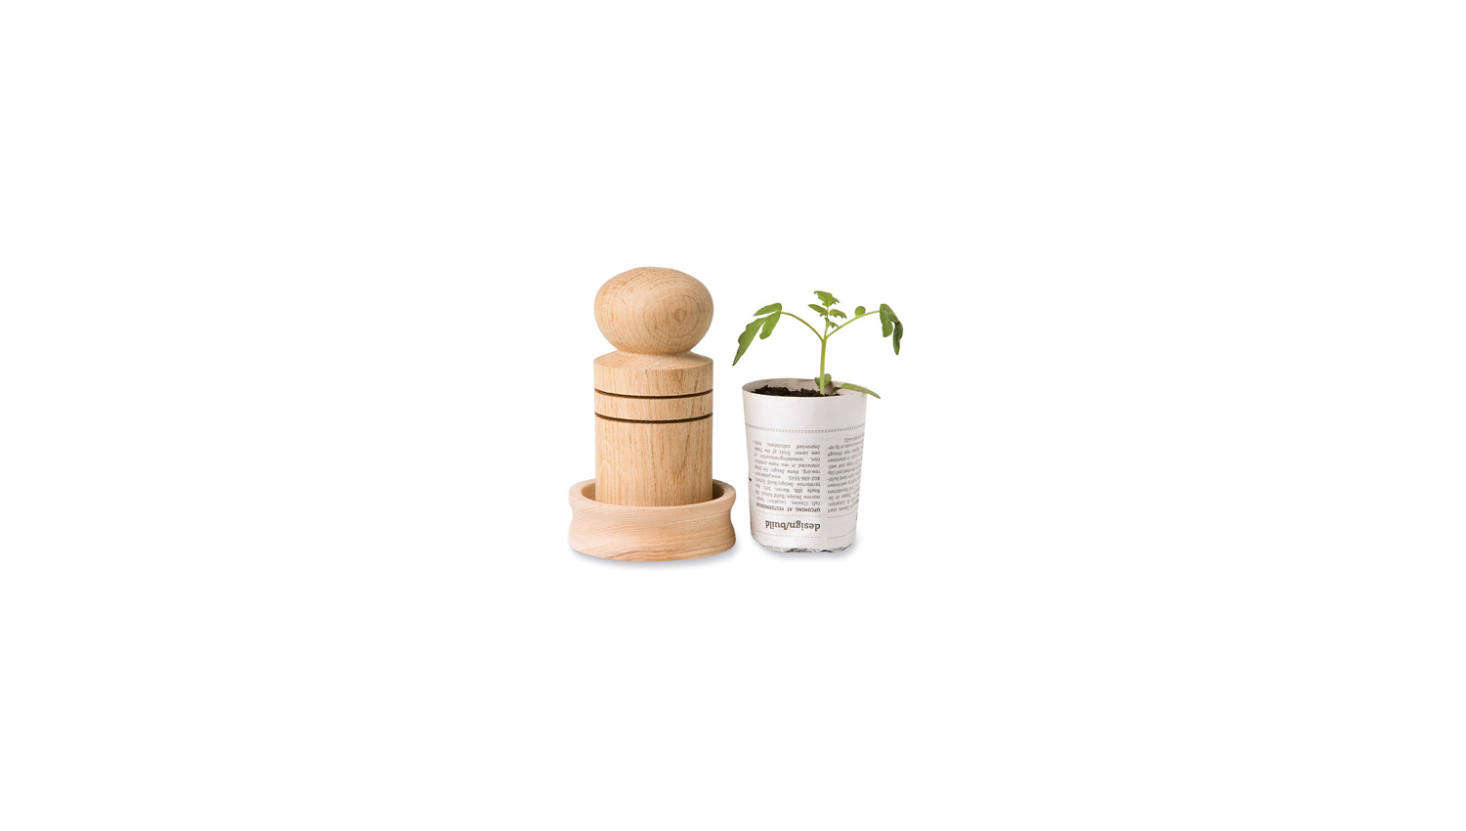 For the crafty (and eco-minded) gardener: a Paper Pot Maker transforms newsprint into little pots for seedlings. (Plus, the paper pots are biodegradable, so they can be planted directly in the ground when the time comes.) The wooden tool is $.95 from Gardeners.com.